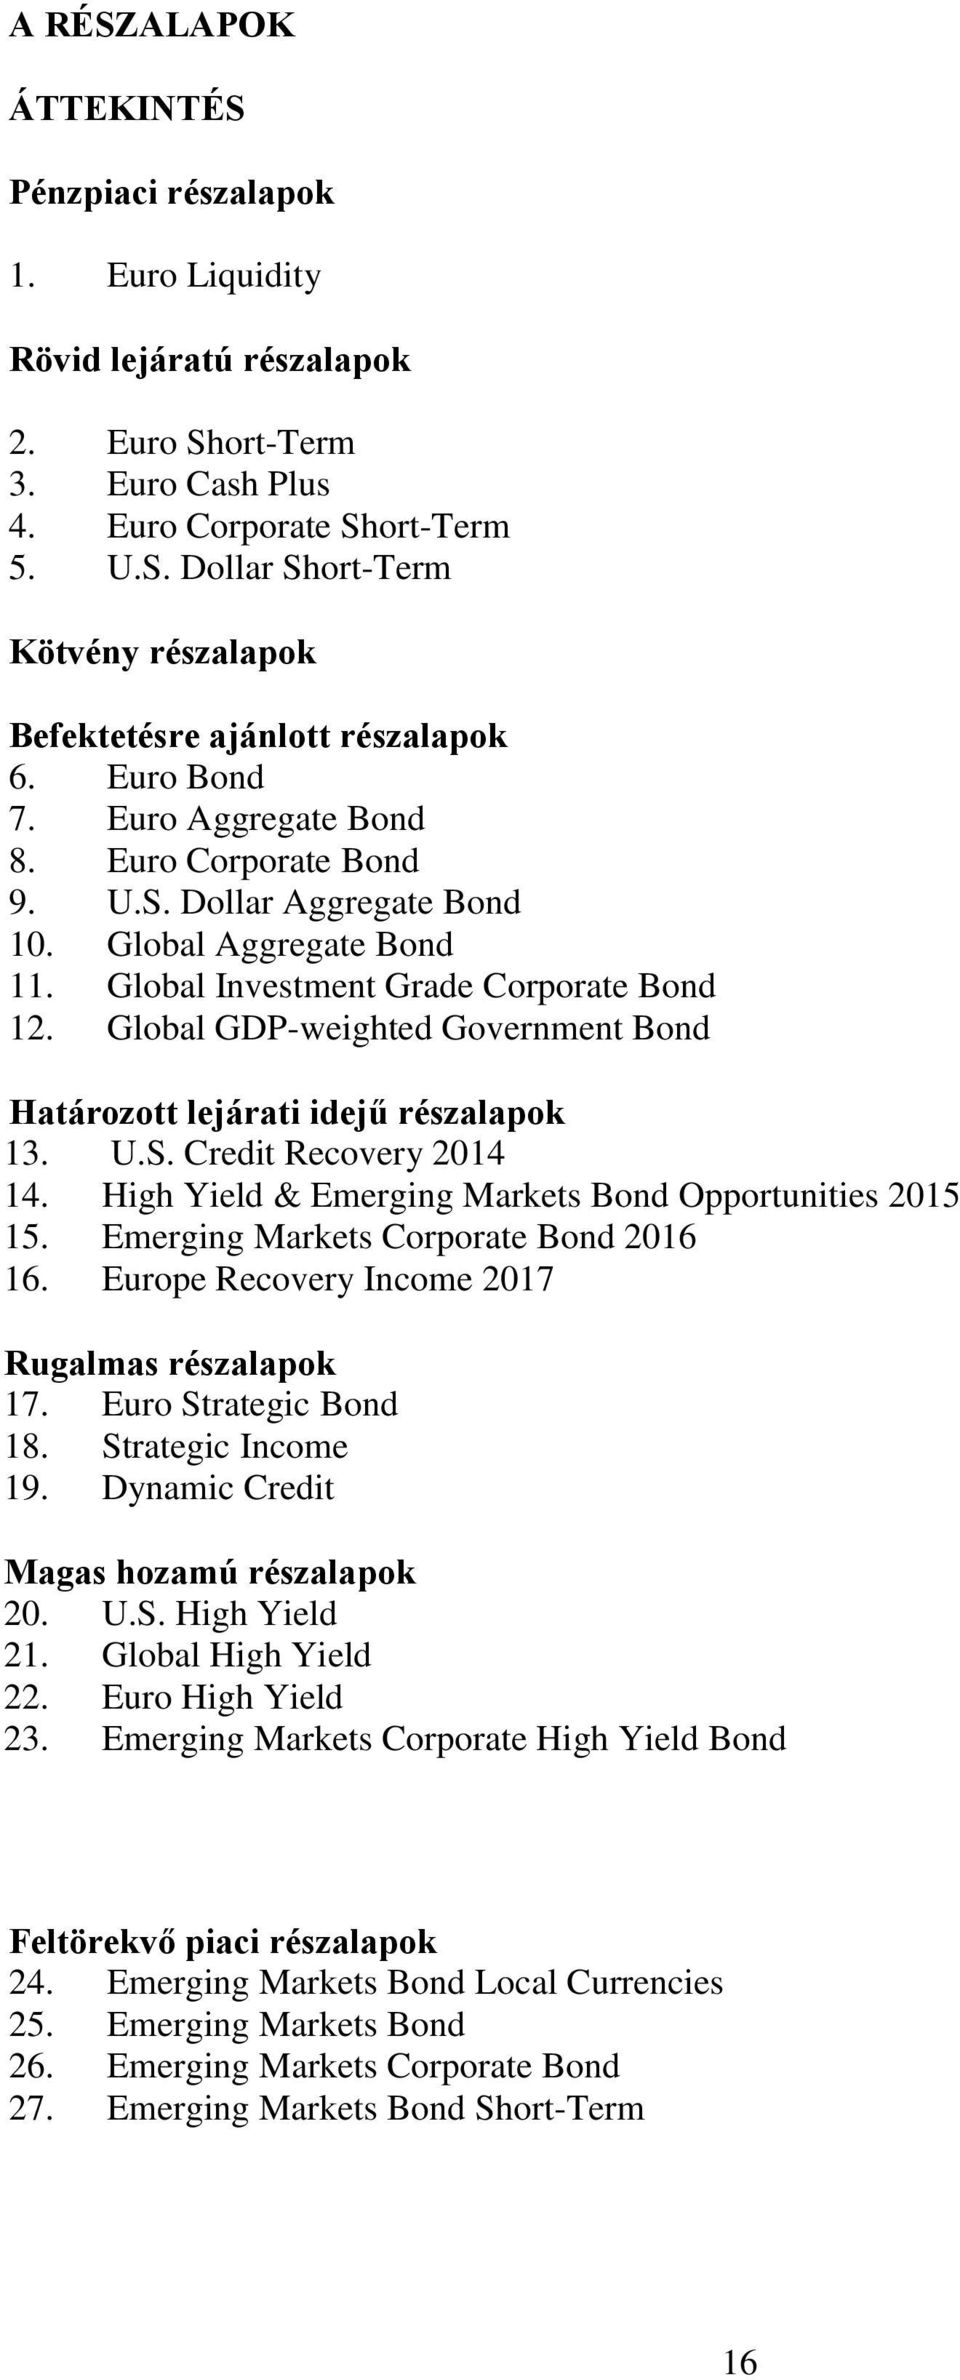 Global GDP-weighted Government Bond Határozott lejárati idejű részalapok 13. U.S. Credit Recovery 2014 14. High Yield & Emerging Markets Bond Opportunities 2015 15.